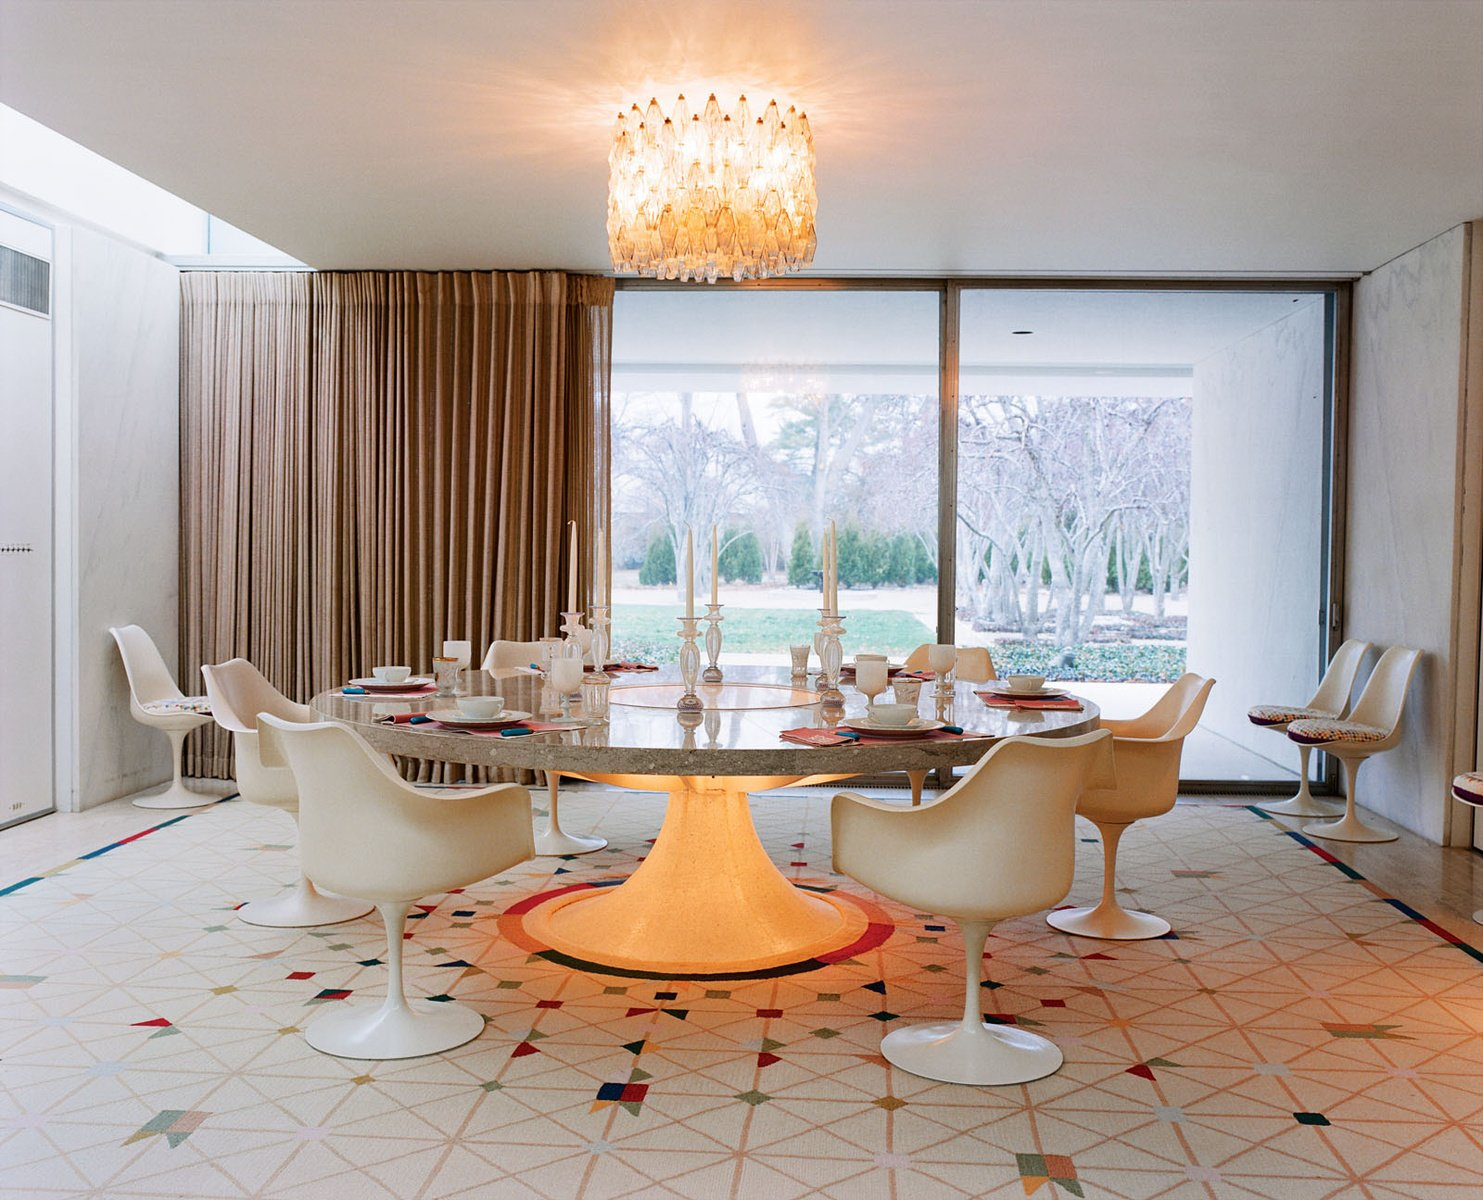 Eero Saarinen's legendary Miller House is not your average home, this modern gem was generously donated to the Indianapolis Museum of Art in 2011. The dining room centers around a custom Saarinen-designed marble-and-terrazzo table ringed by Tulip chairs. Overhead is a Venini chandelier. Photo by: Leslie Williamson  Photo 8 of 10 in Design Dictionary: Tulip Chair